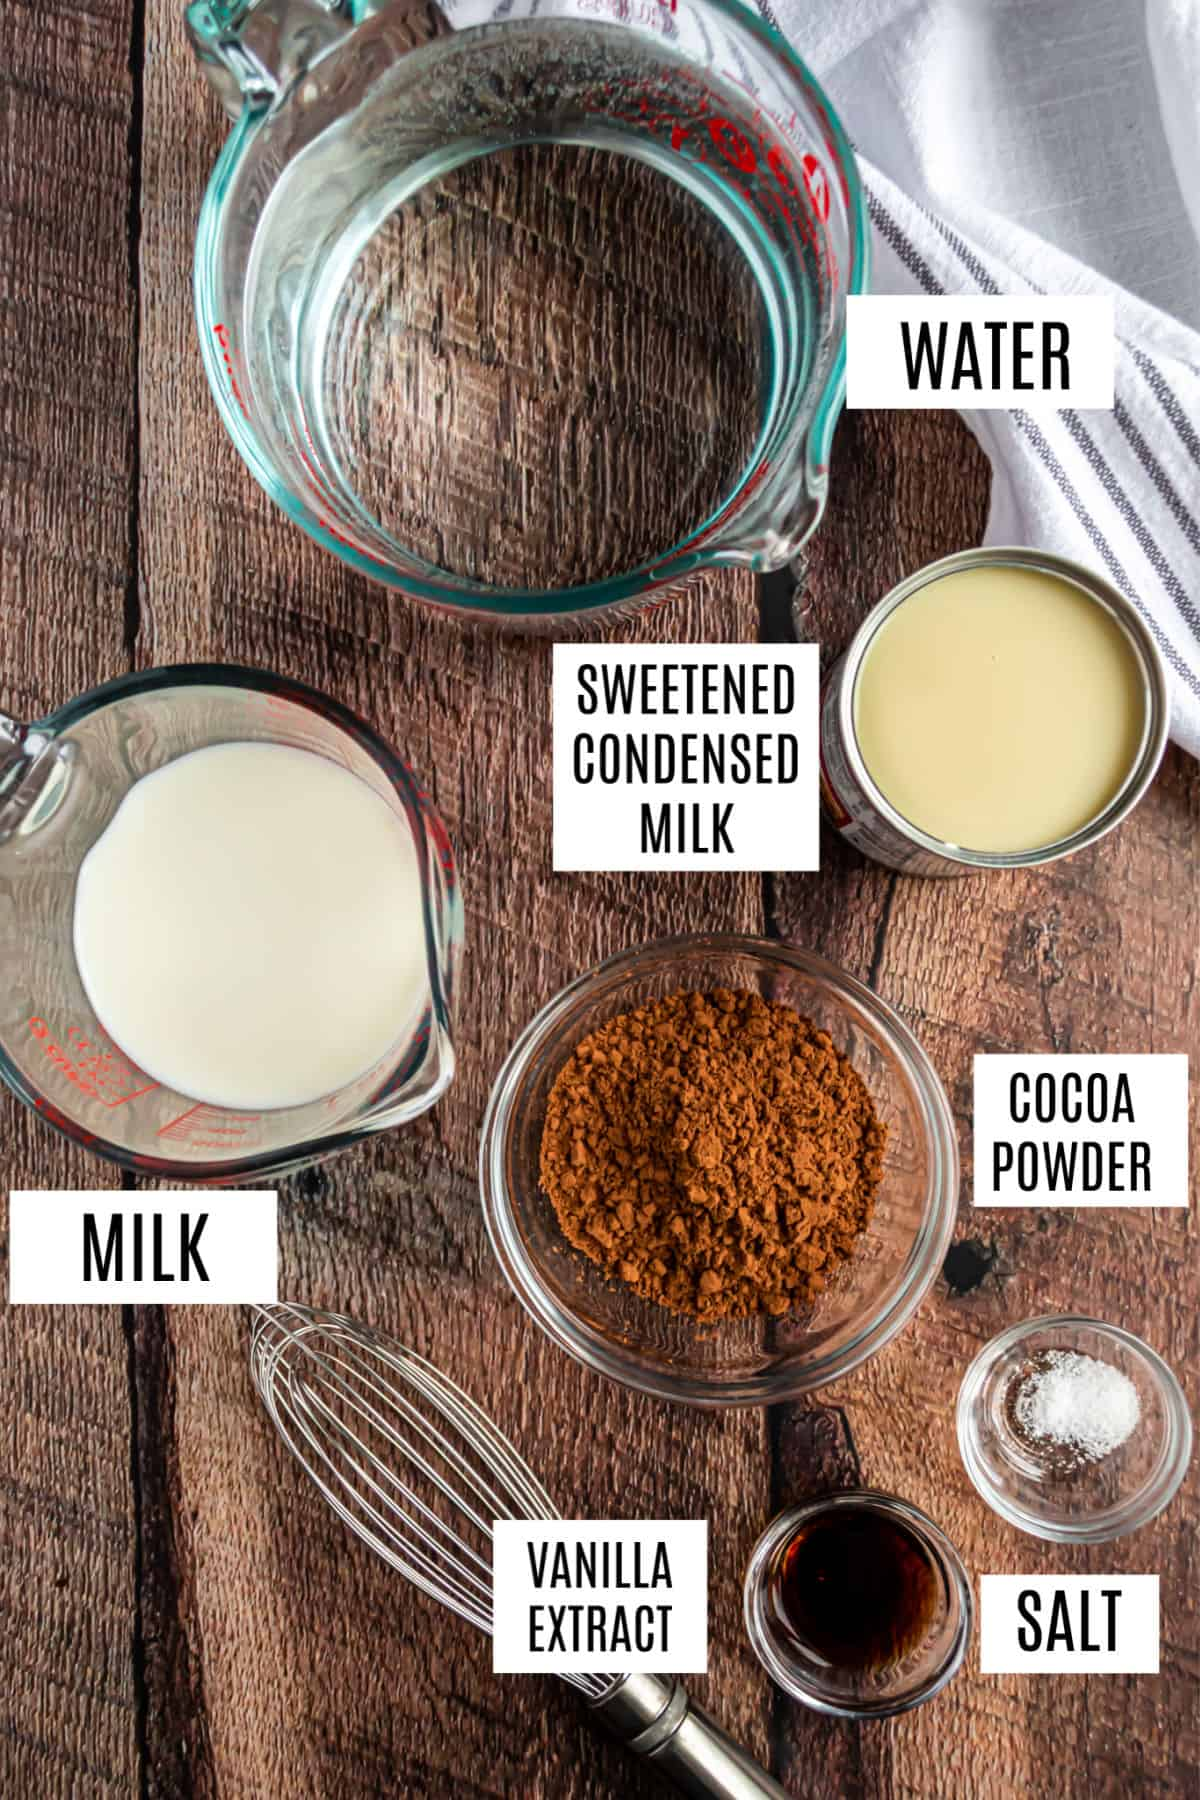 Ingredients needed for homemade hot chocolate.